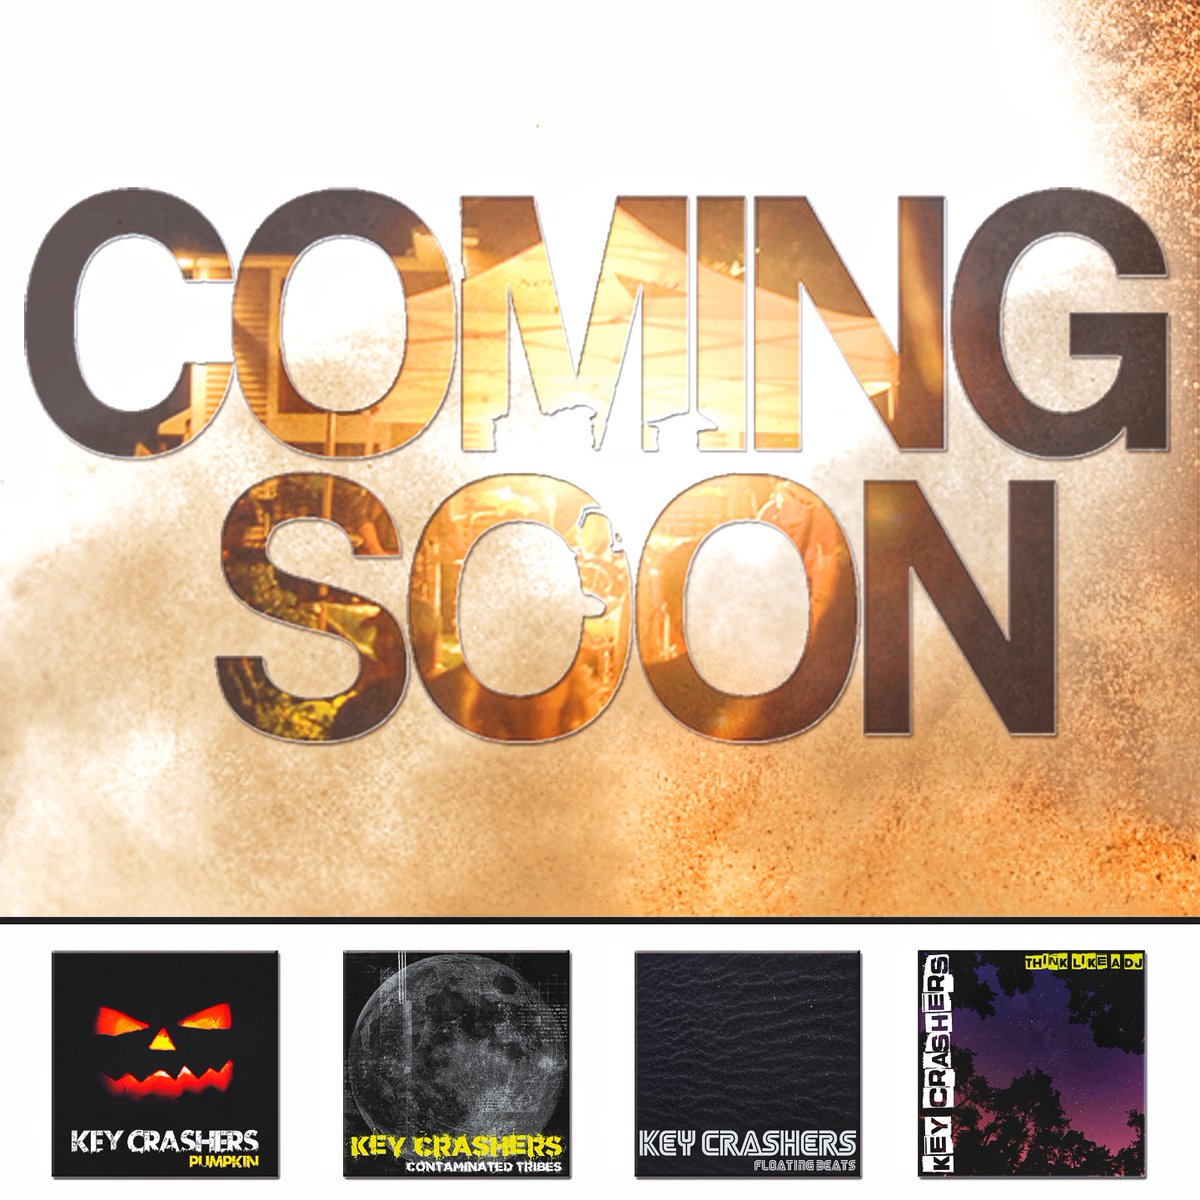 4 new #songs signed and scheduled for #release 🔥 Release Dates TBA very soon ... #staytuned 👊🏻🔥 #keycrashers #comingsoon #newmusic #newmusicalert #tba #newmusicfriday #bigroom #dj #djs #club #clubsound #melbournebounce #festival #party #weekend #edm #edmmusic https://t.co/brsKziFAOH